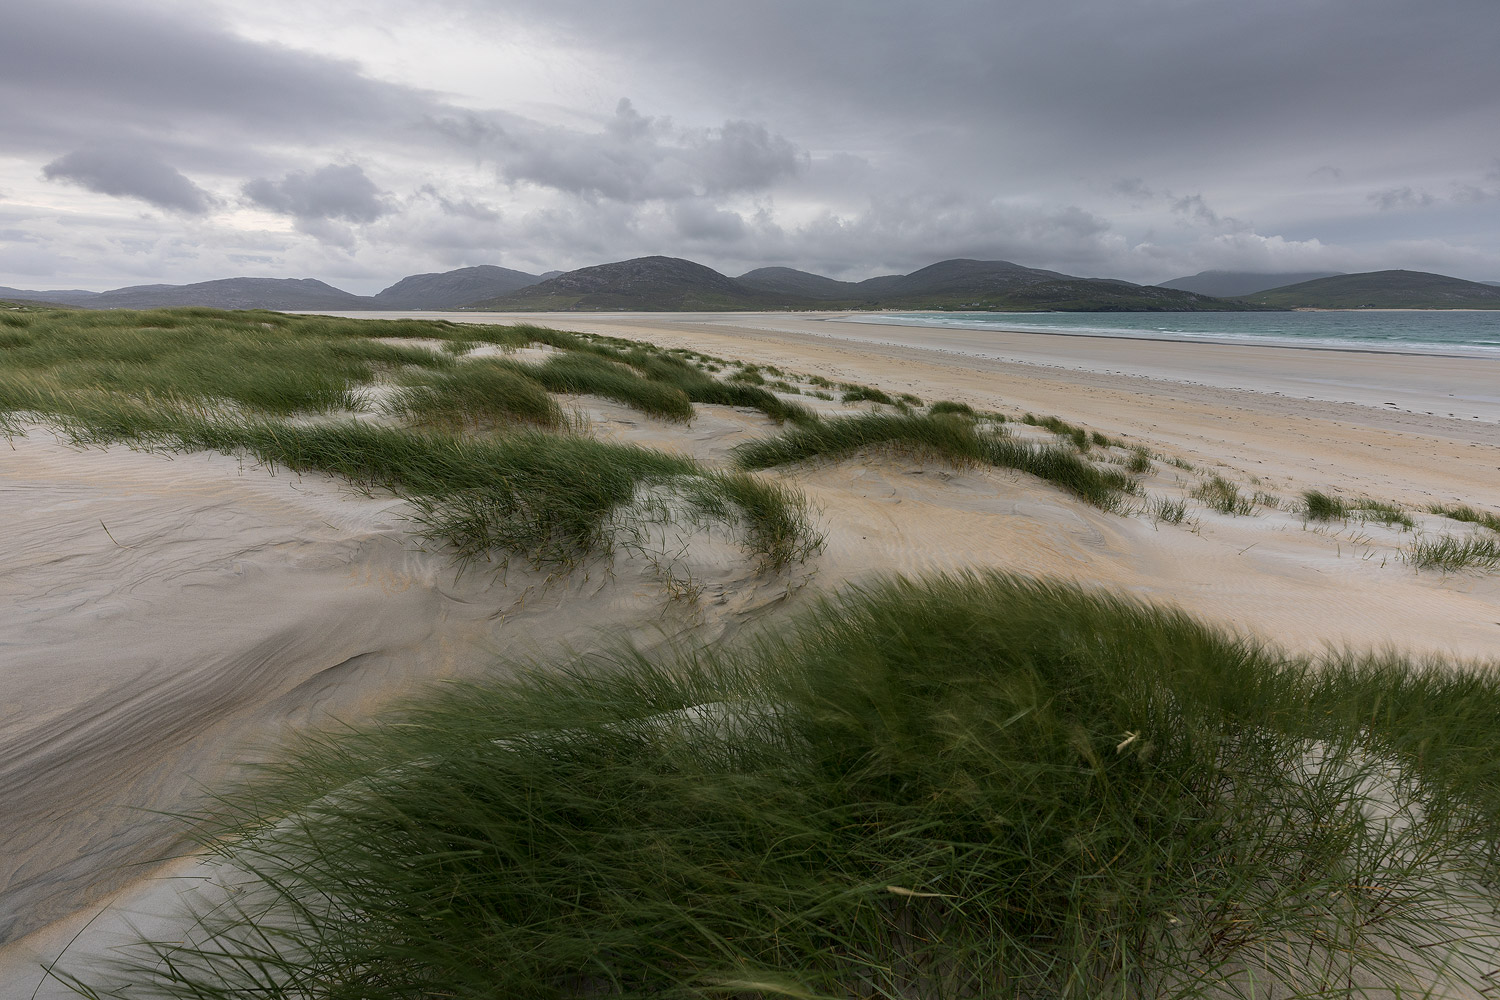 luskentyre-beach-isle-of-harris-1.jpg